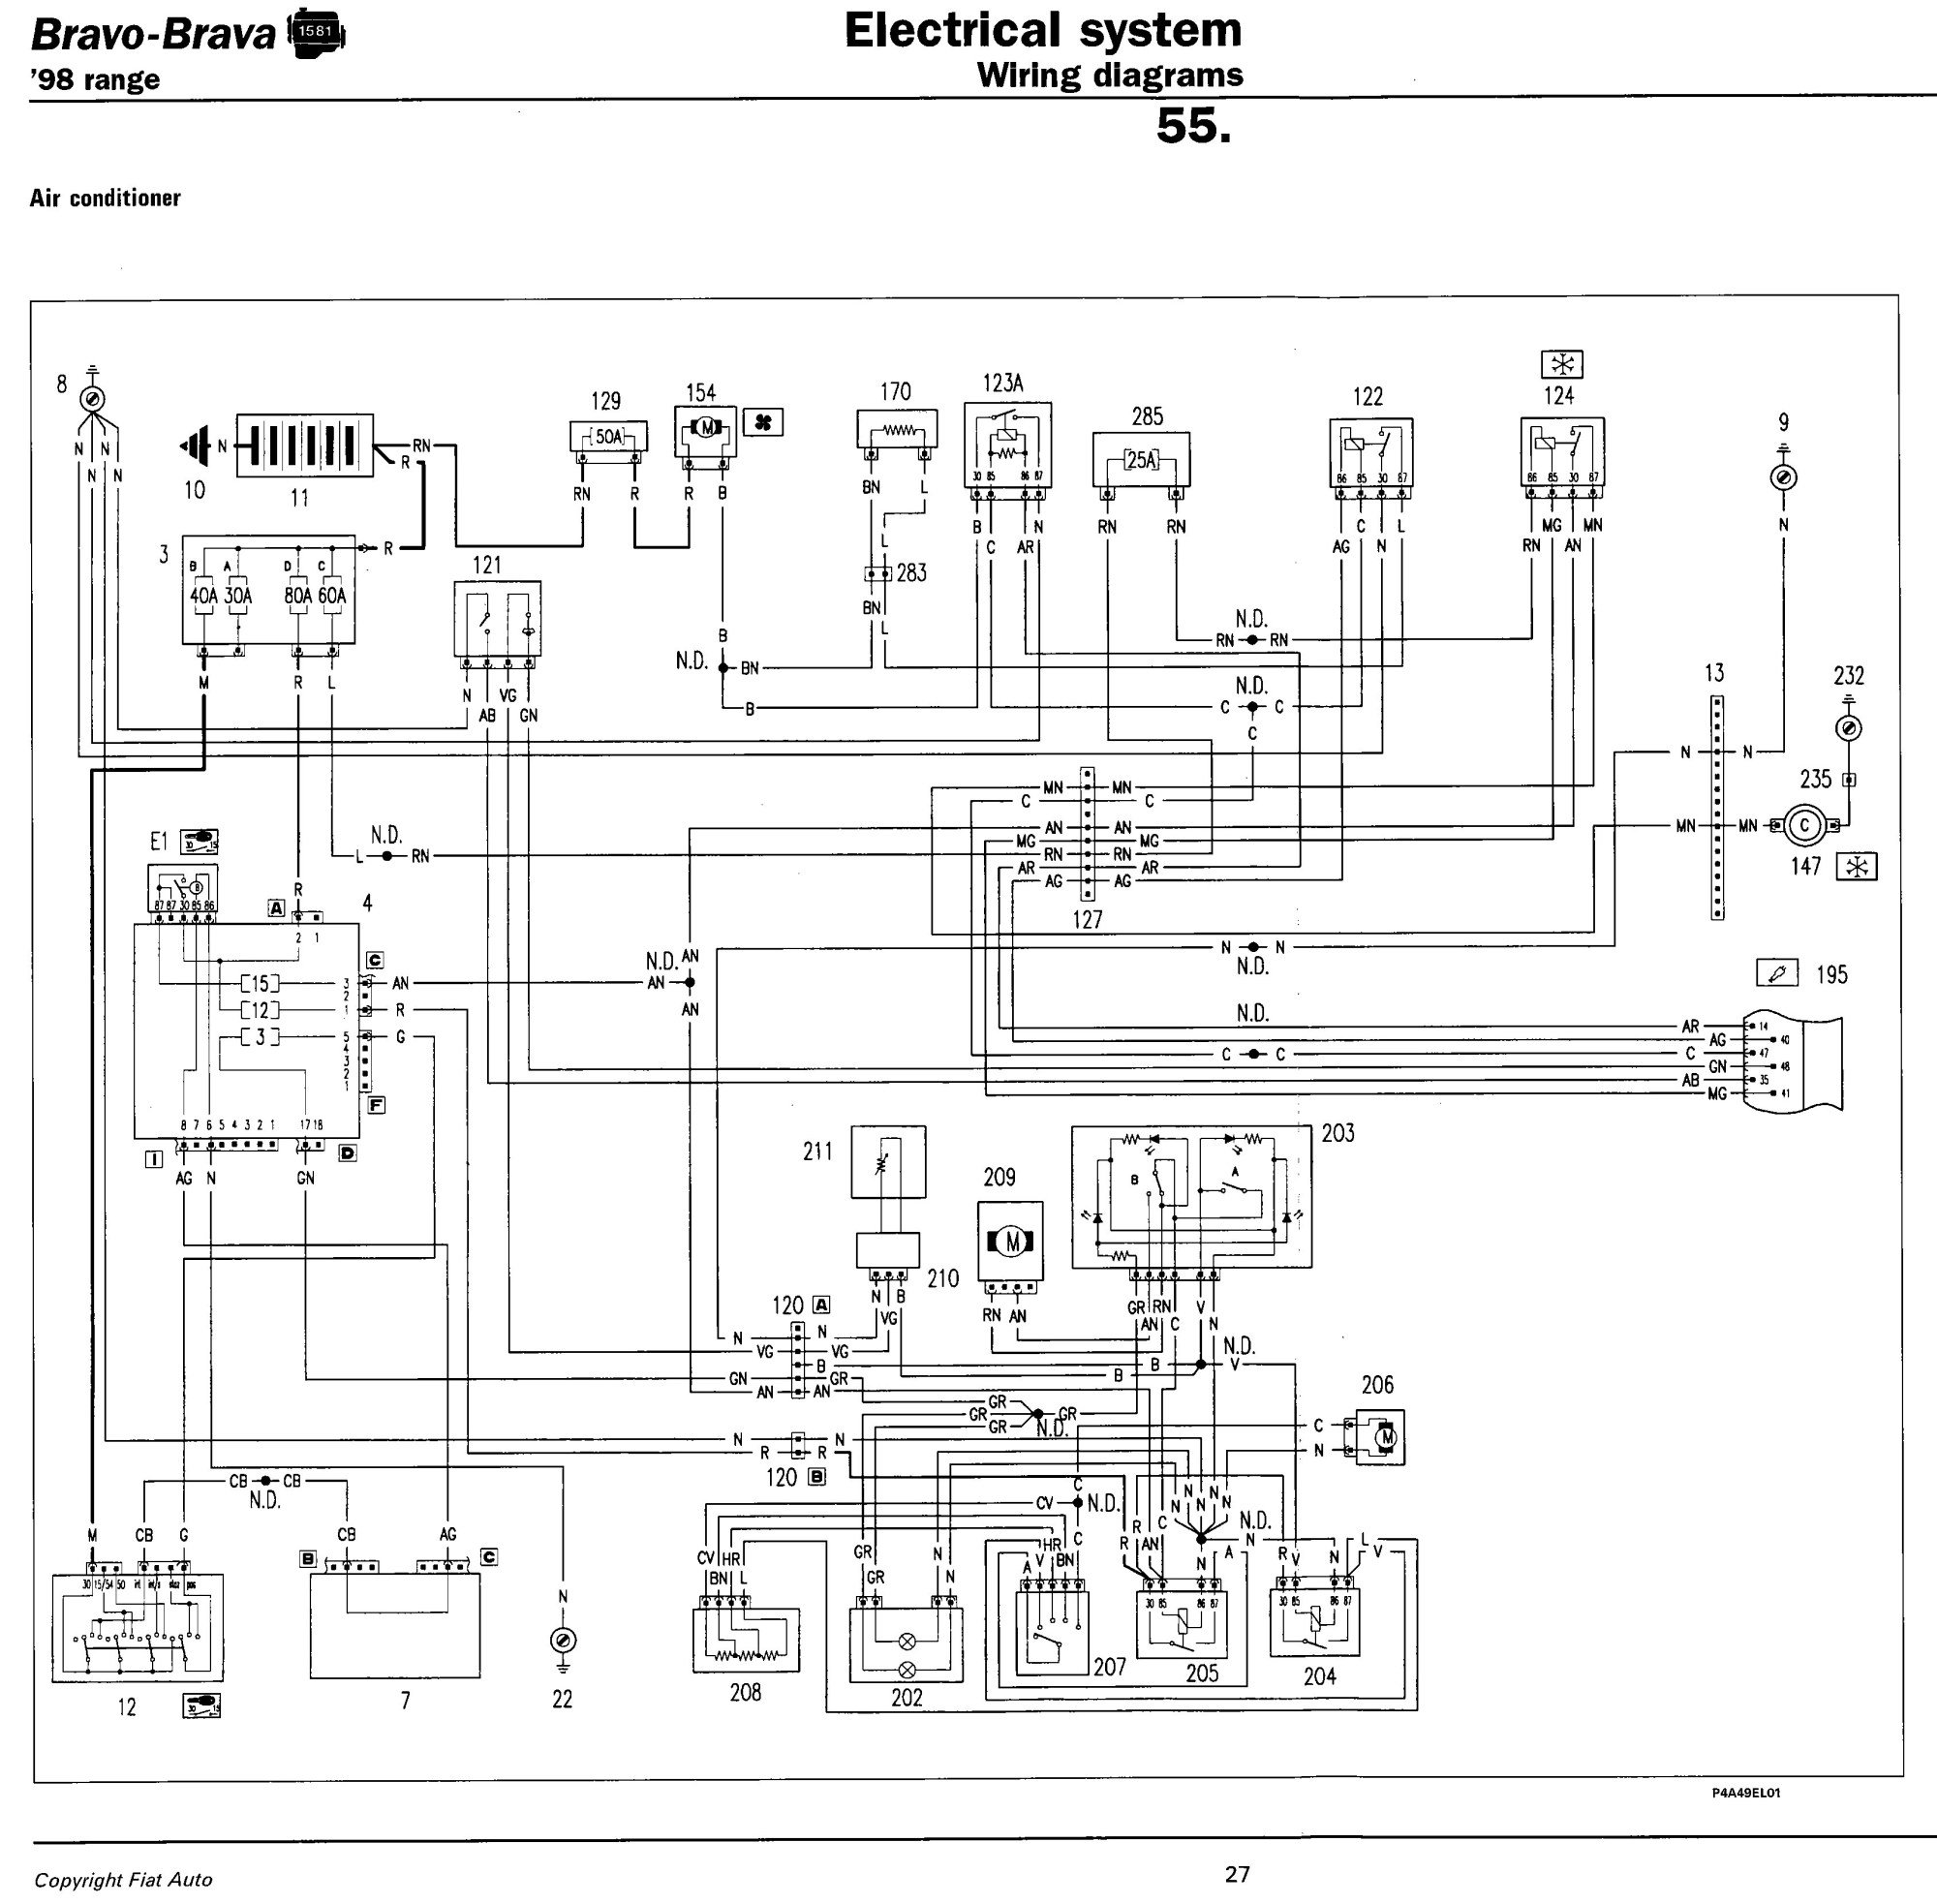 hight resolution of fiat x19 wiring diagram wiring diagram toolboxfiat 128 sedan wiring wiring schematic diagram 8 peg kassel